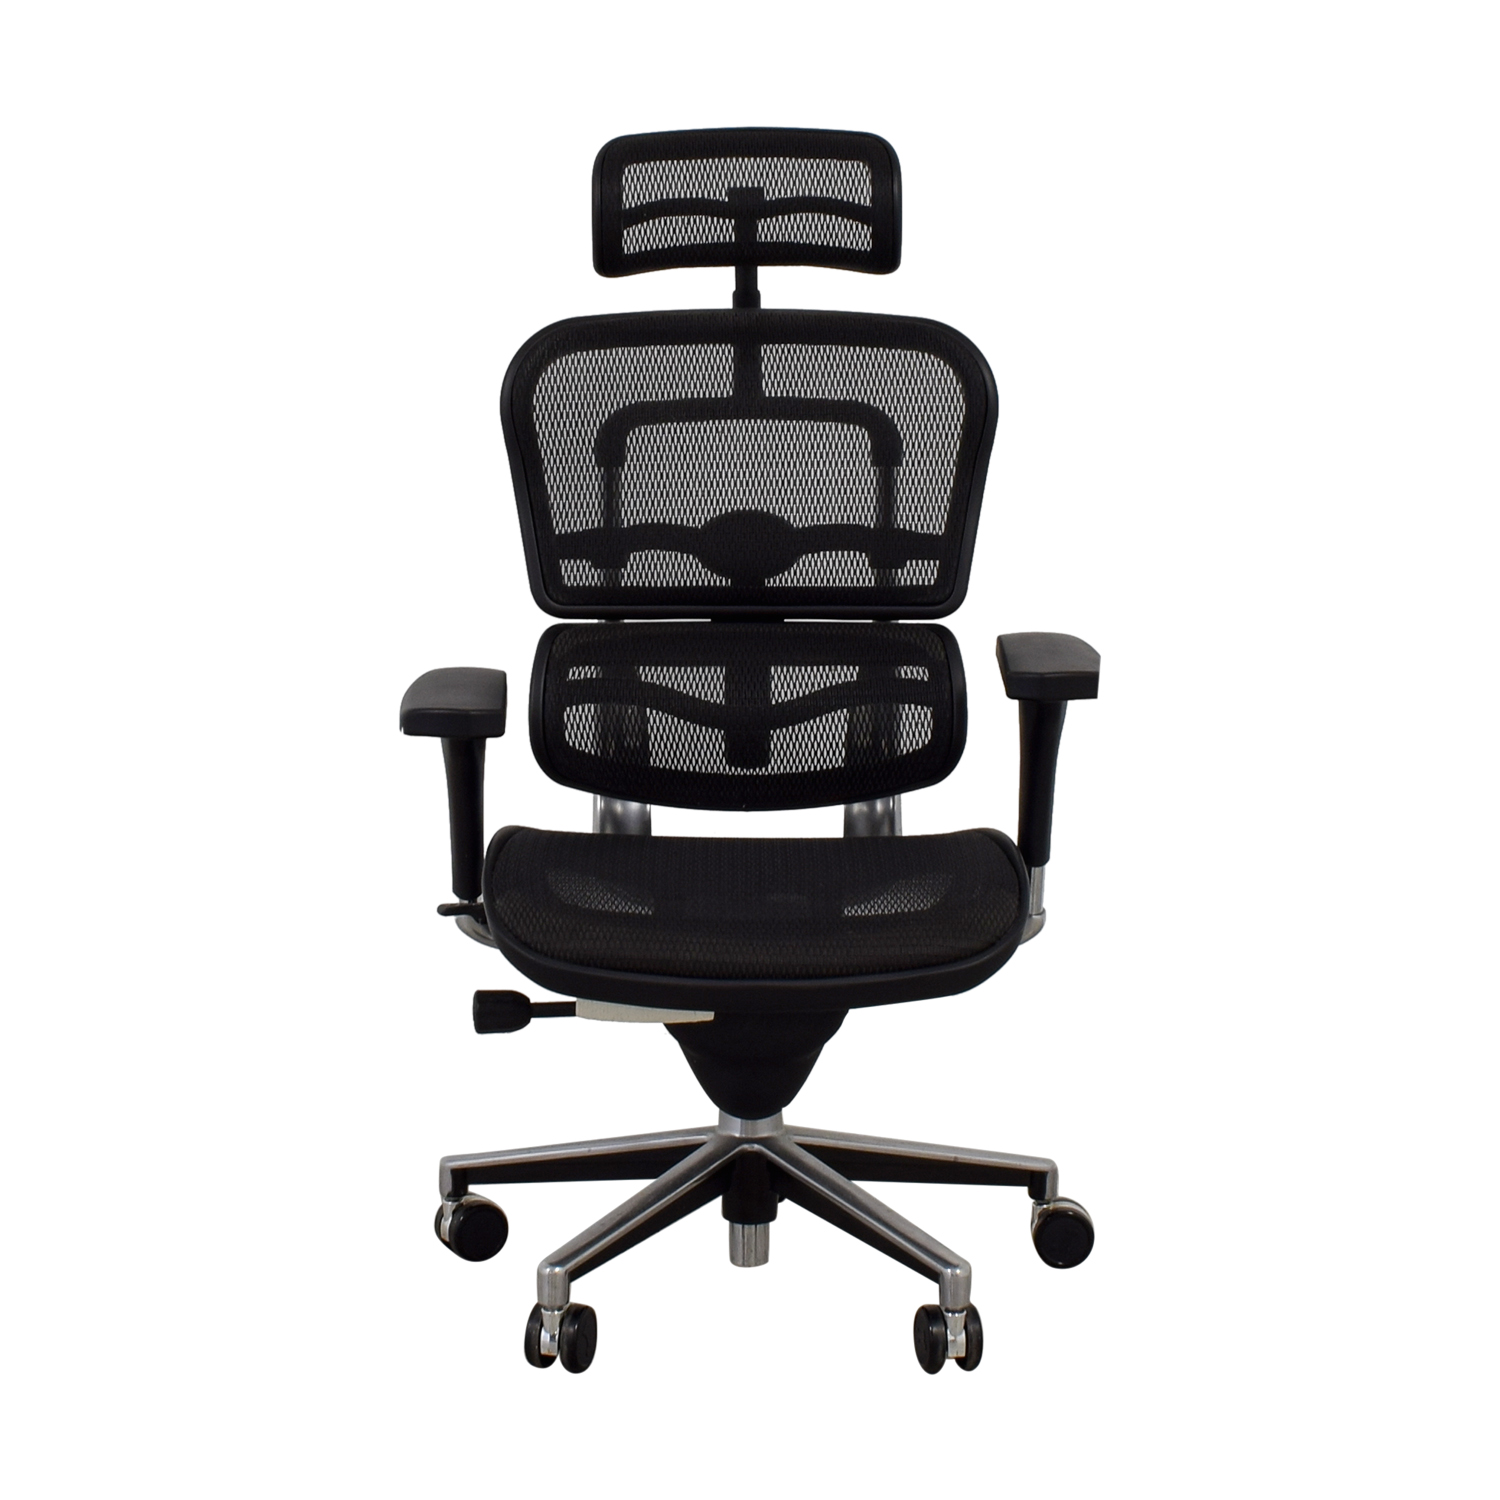 Ergohuman Ergohuman Black Swivel Chair with Headrest on sale